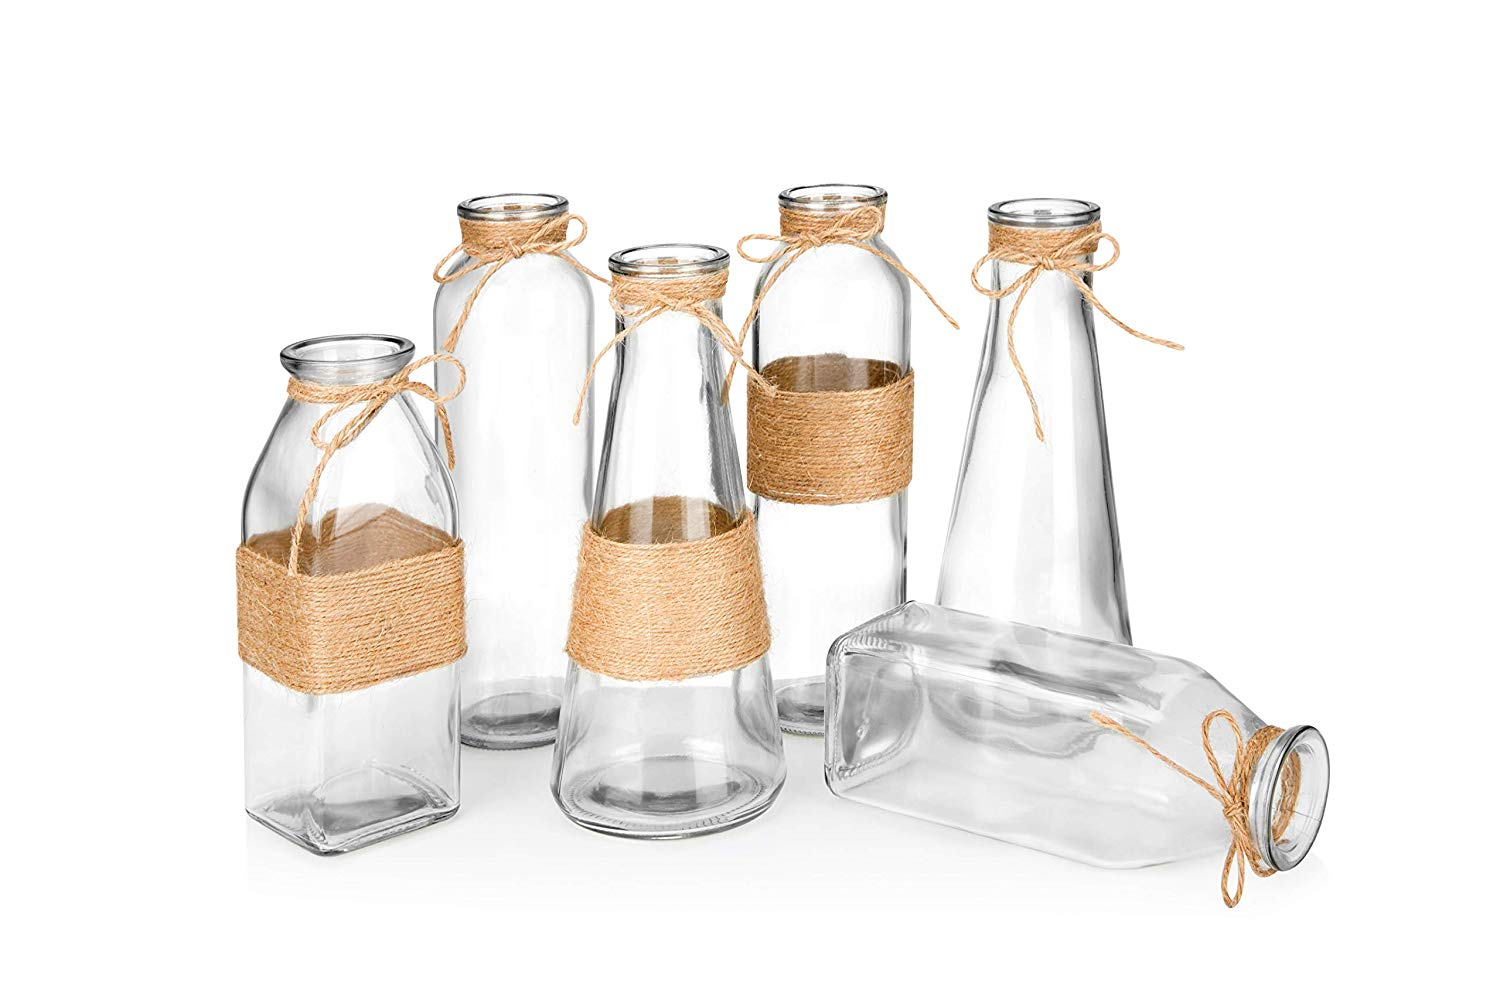 Different-Shaped Glass Containers with Rope